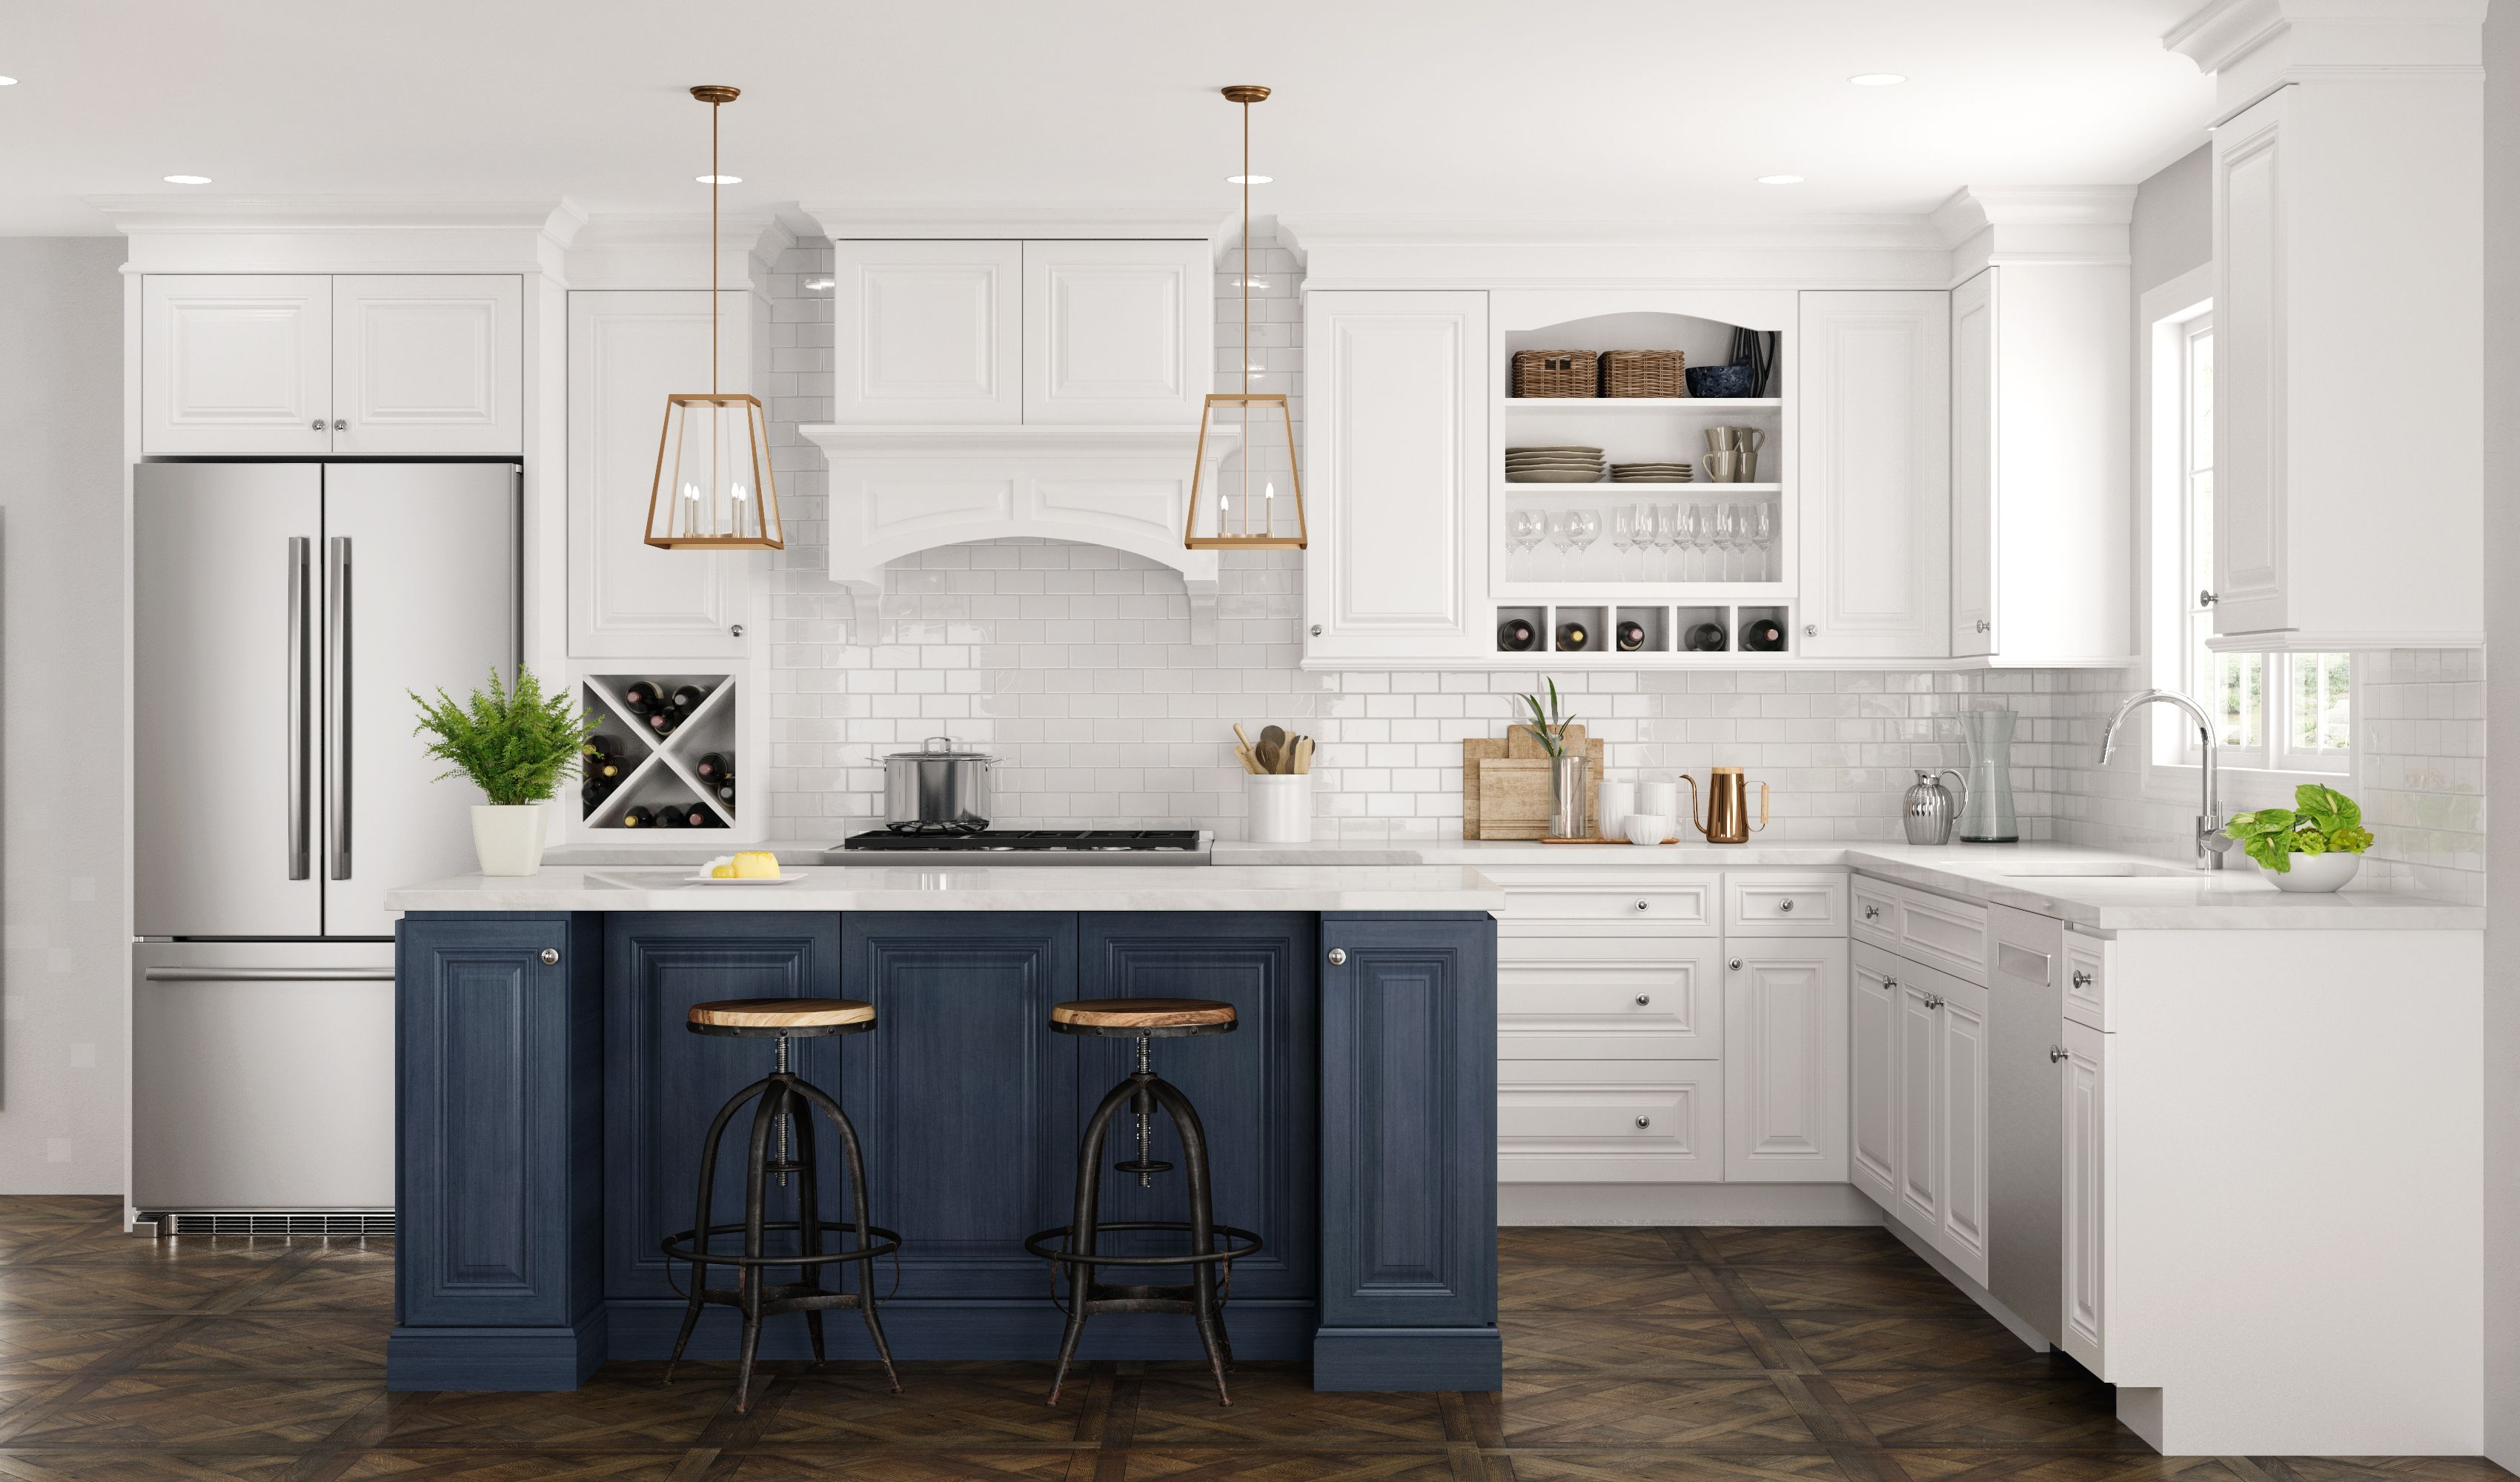 New Park Avenue Cabinet Door Style We Are Excited To Announce That The Park Avenue Is Al Kitchen Cabinet Styles Blue Kitchen Cabinets Kitchen And Bath Design